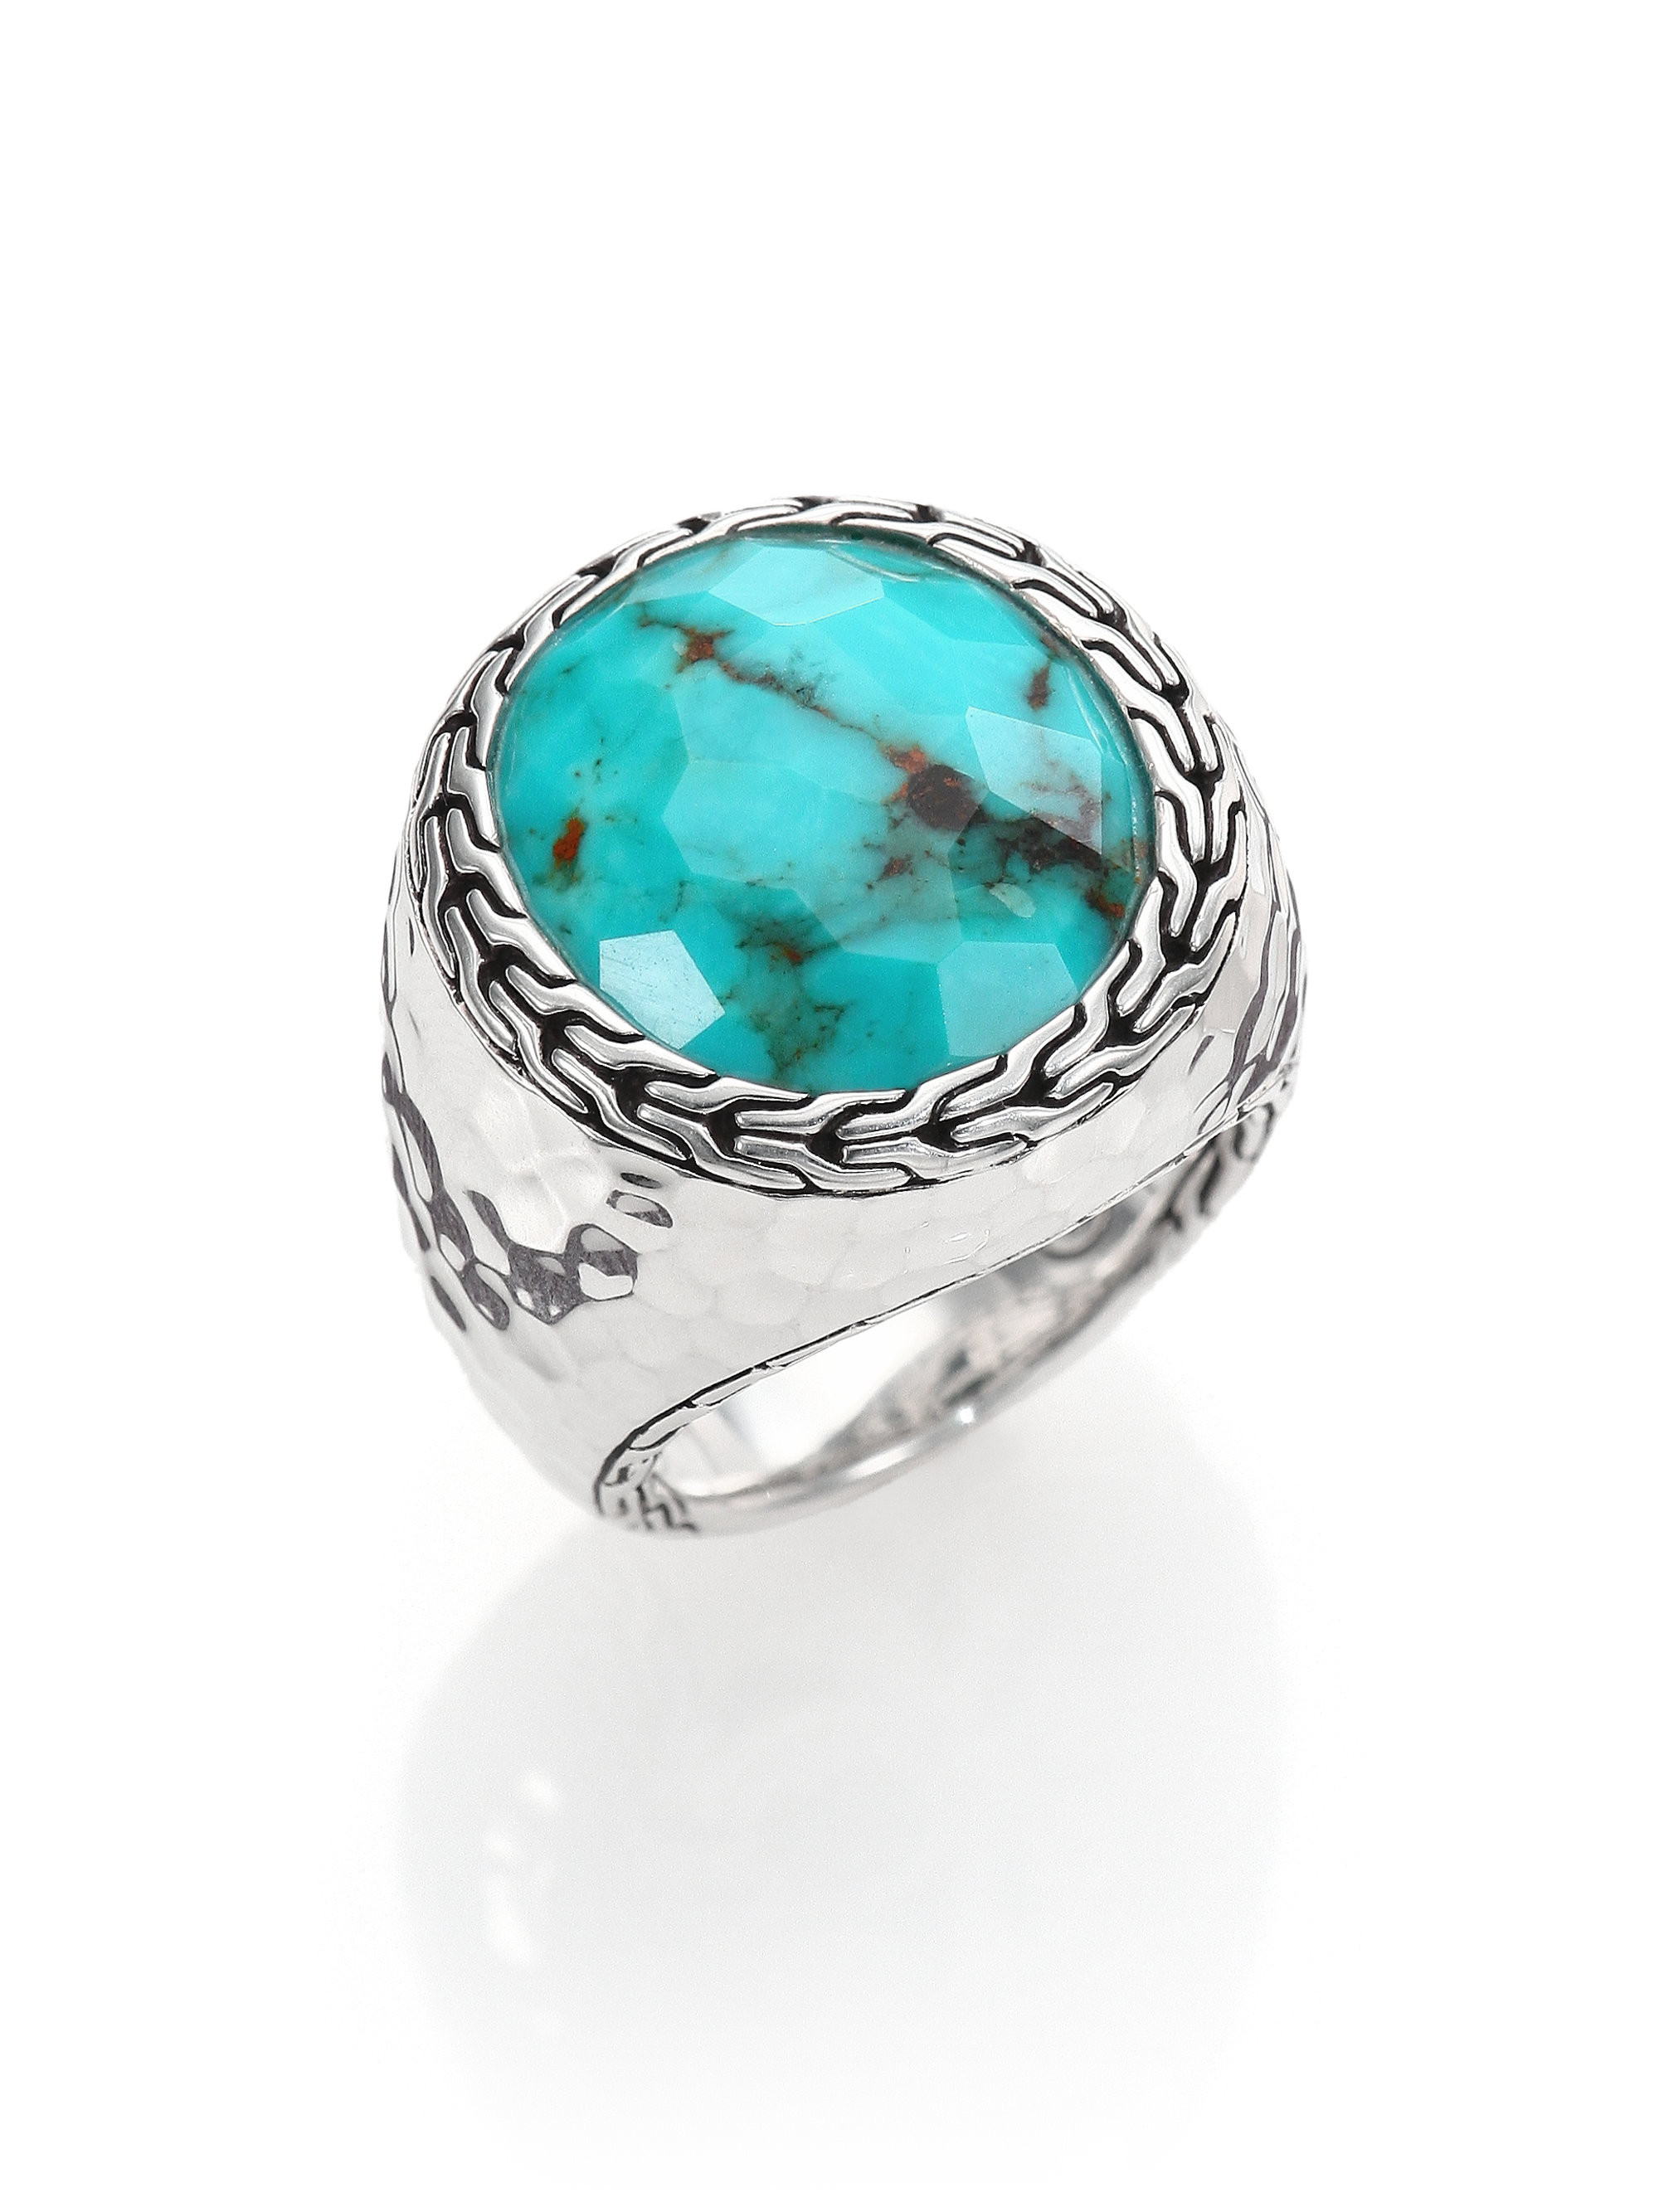 silver sterling teal rings lovely wedding info ring for amazon queenseye set